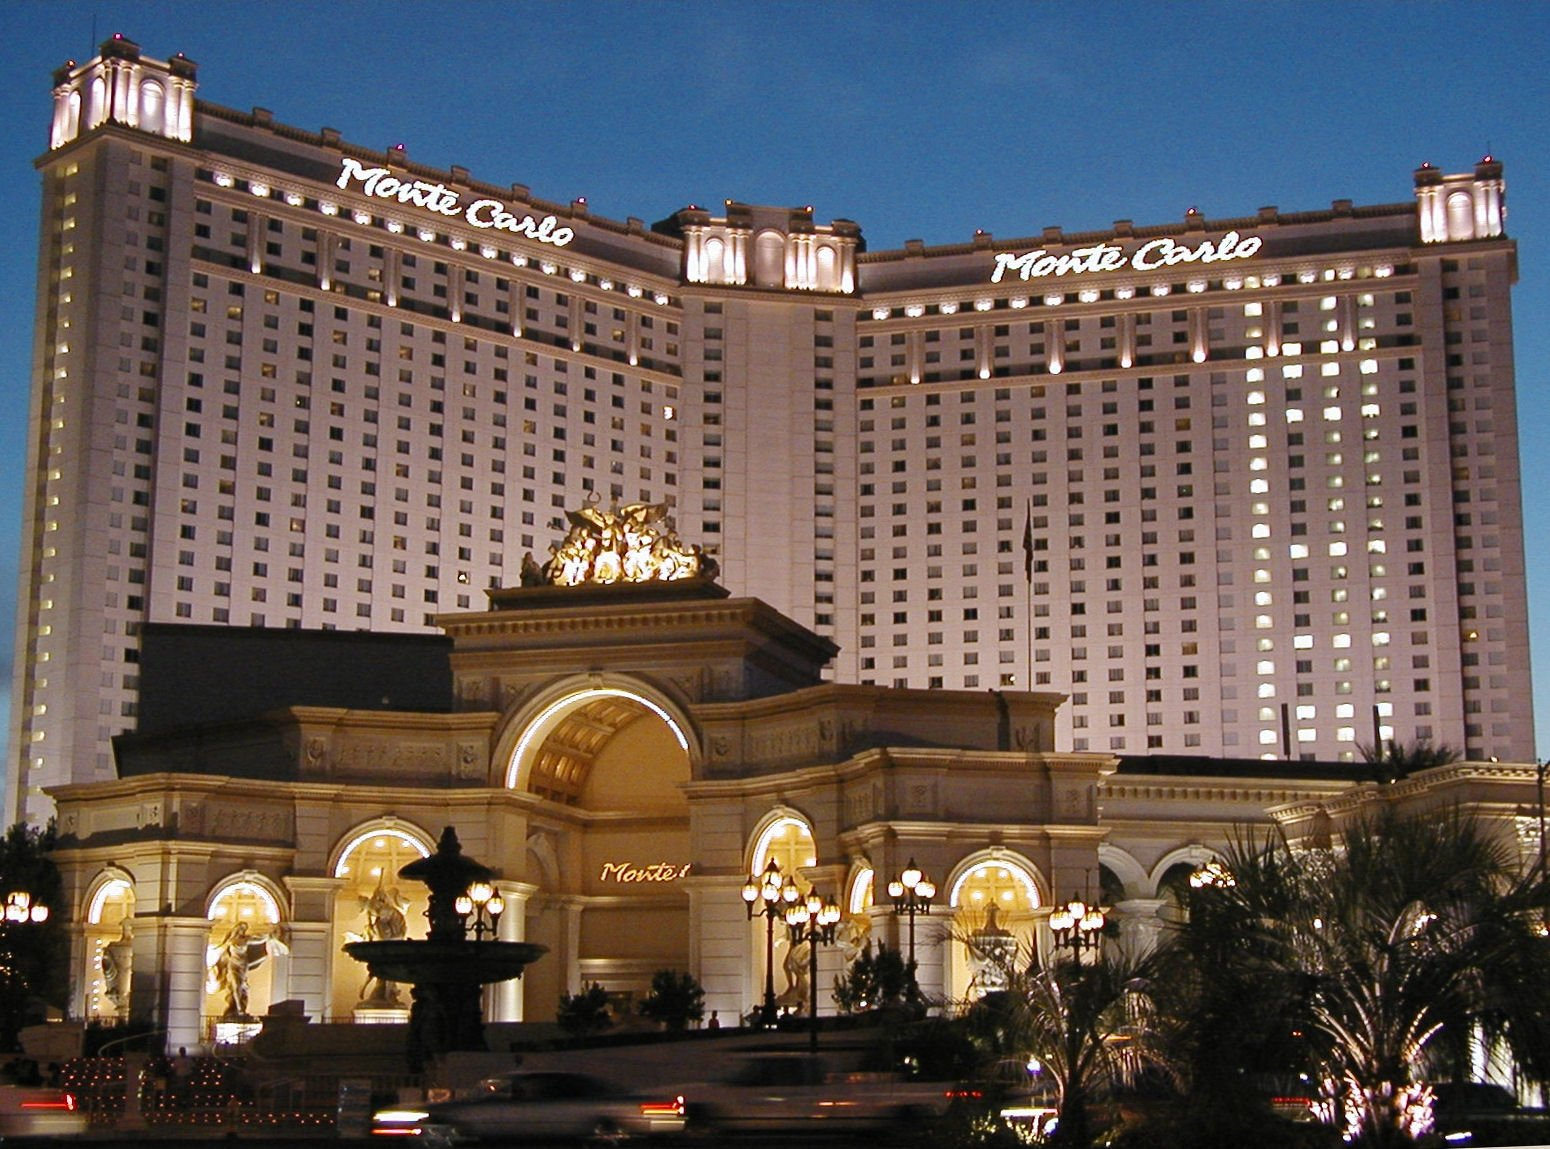 Monte carlo resorts and casino las vegas hotel casino golden nugget